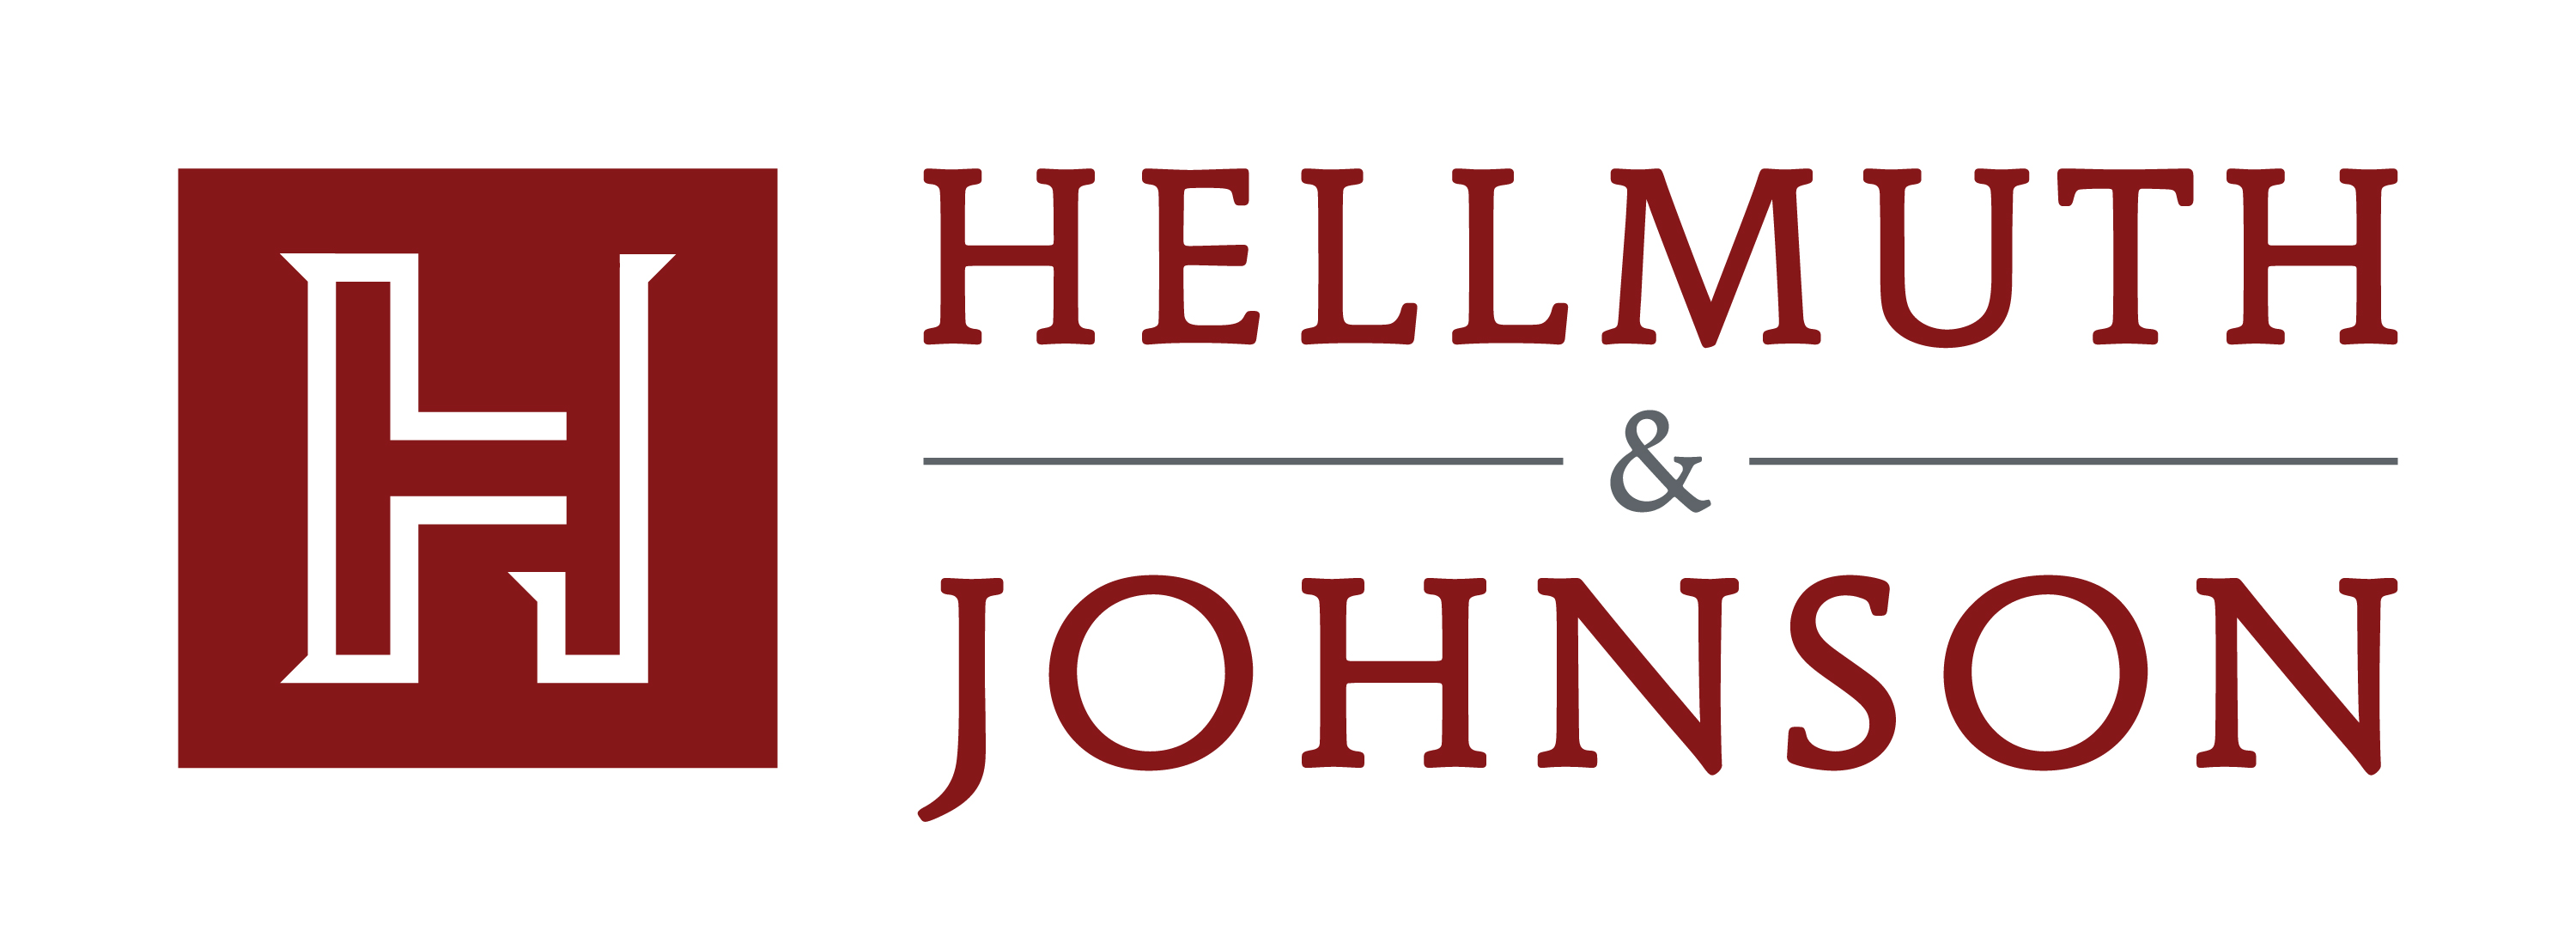 Hellmuth & Johnson